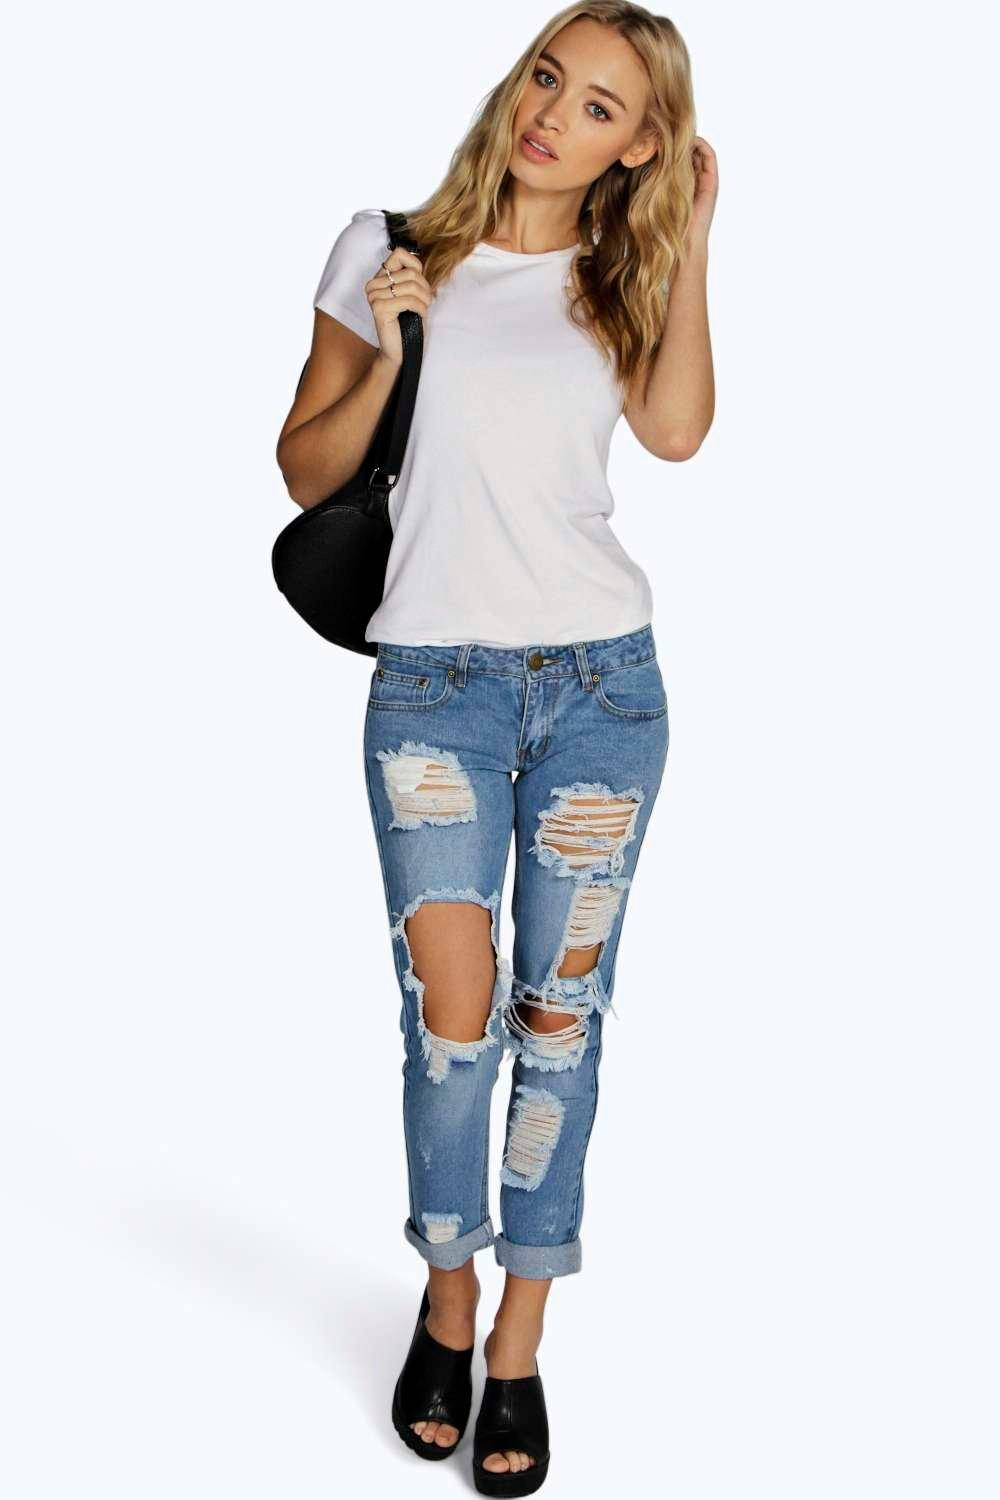 Find a great selection of boyfriend jeans for women at chaplin-favor.tk Shop top brands like NYDJ, AG, Levi's, Kut from the Kloth more. Free shipping & returns.